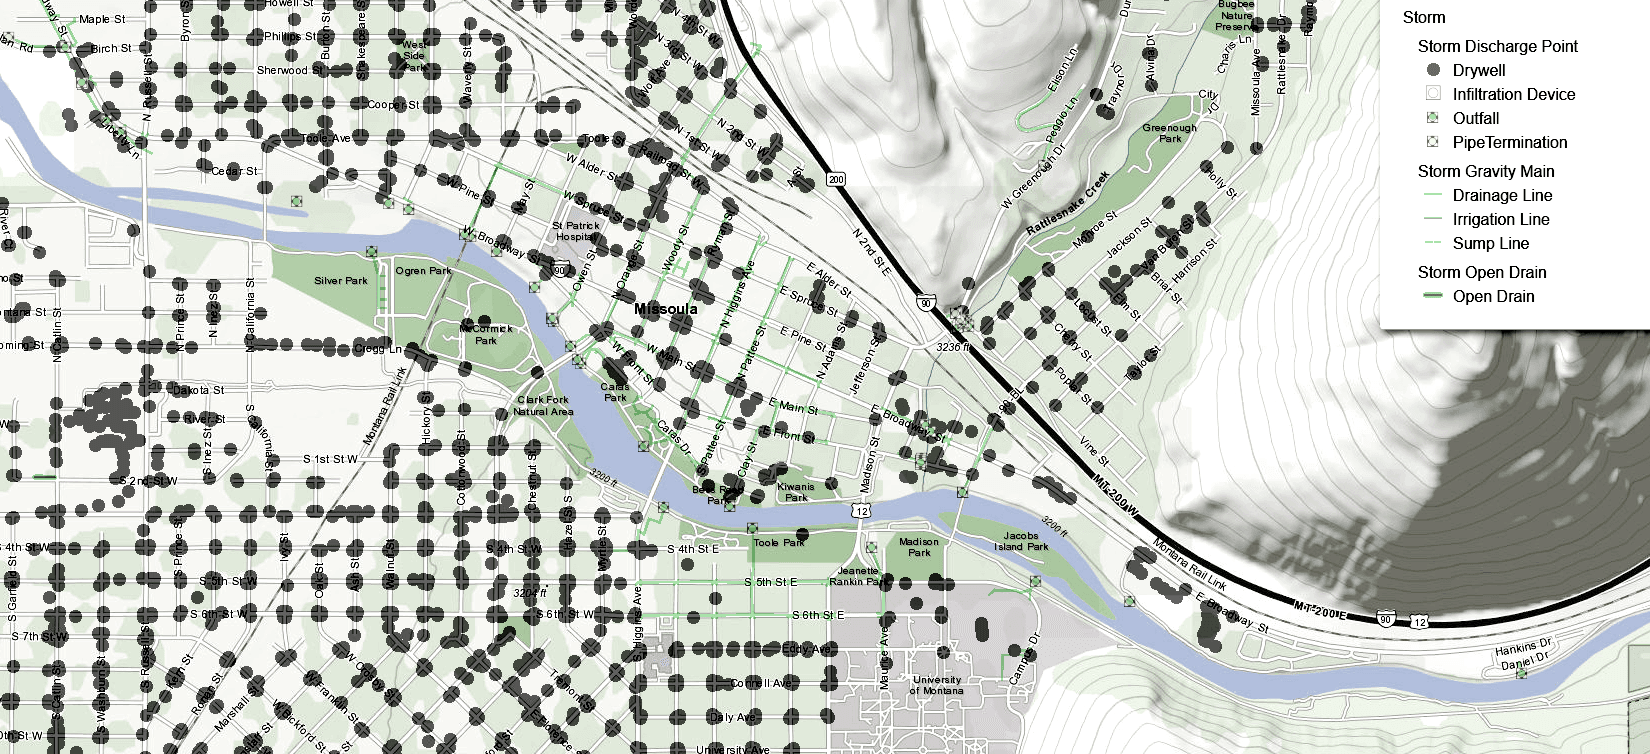 Image showing part of the Missoula Storm Water Map, including hundreds of drywells in a square mile area, with a link to the full page map.